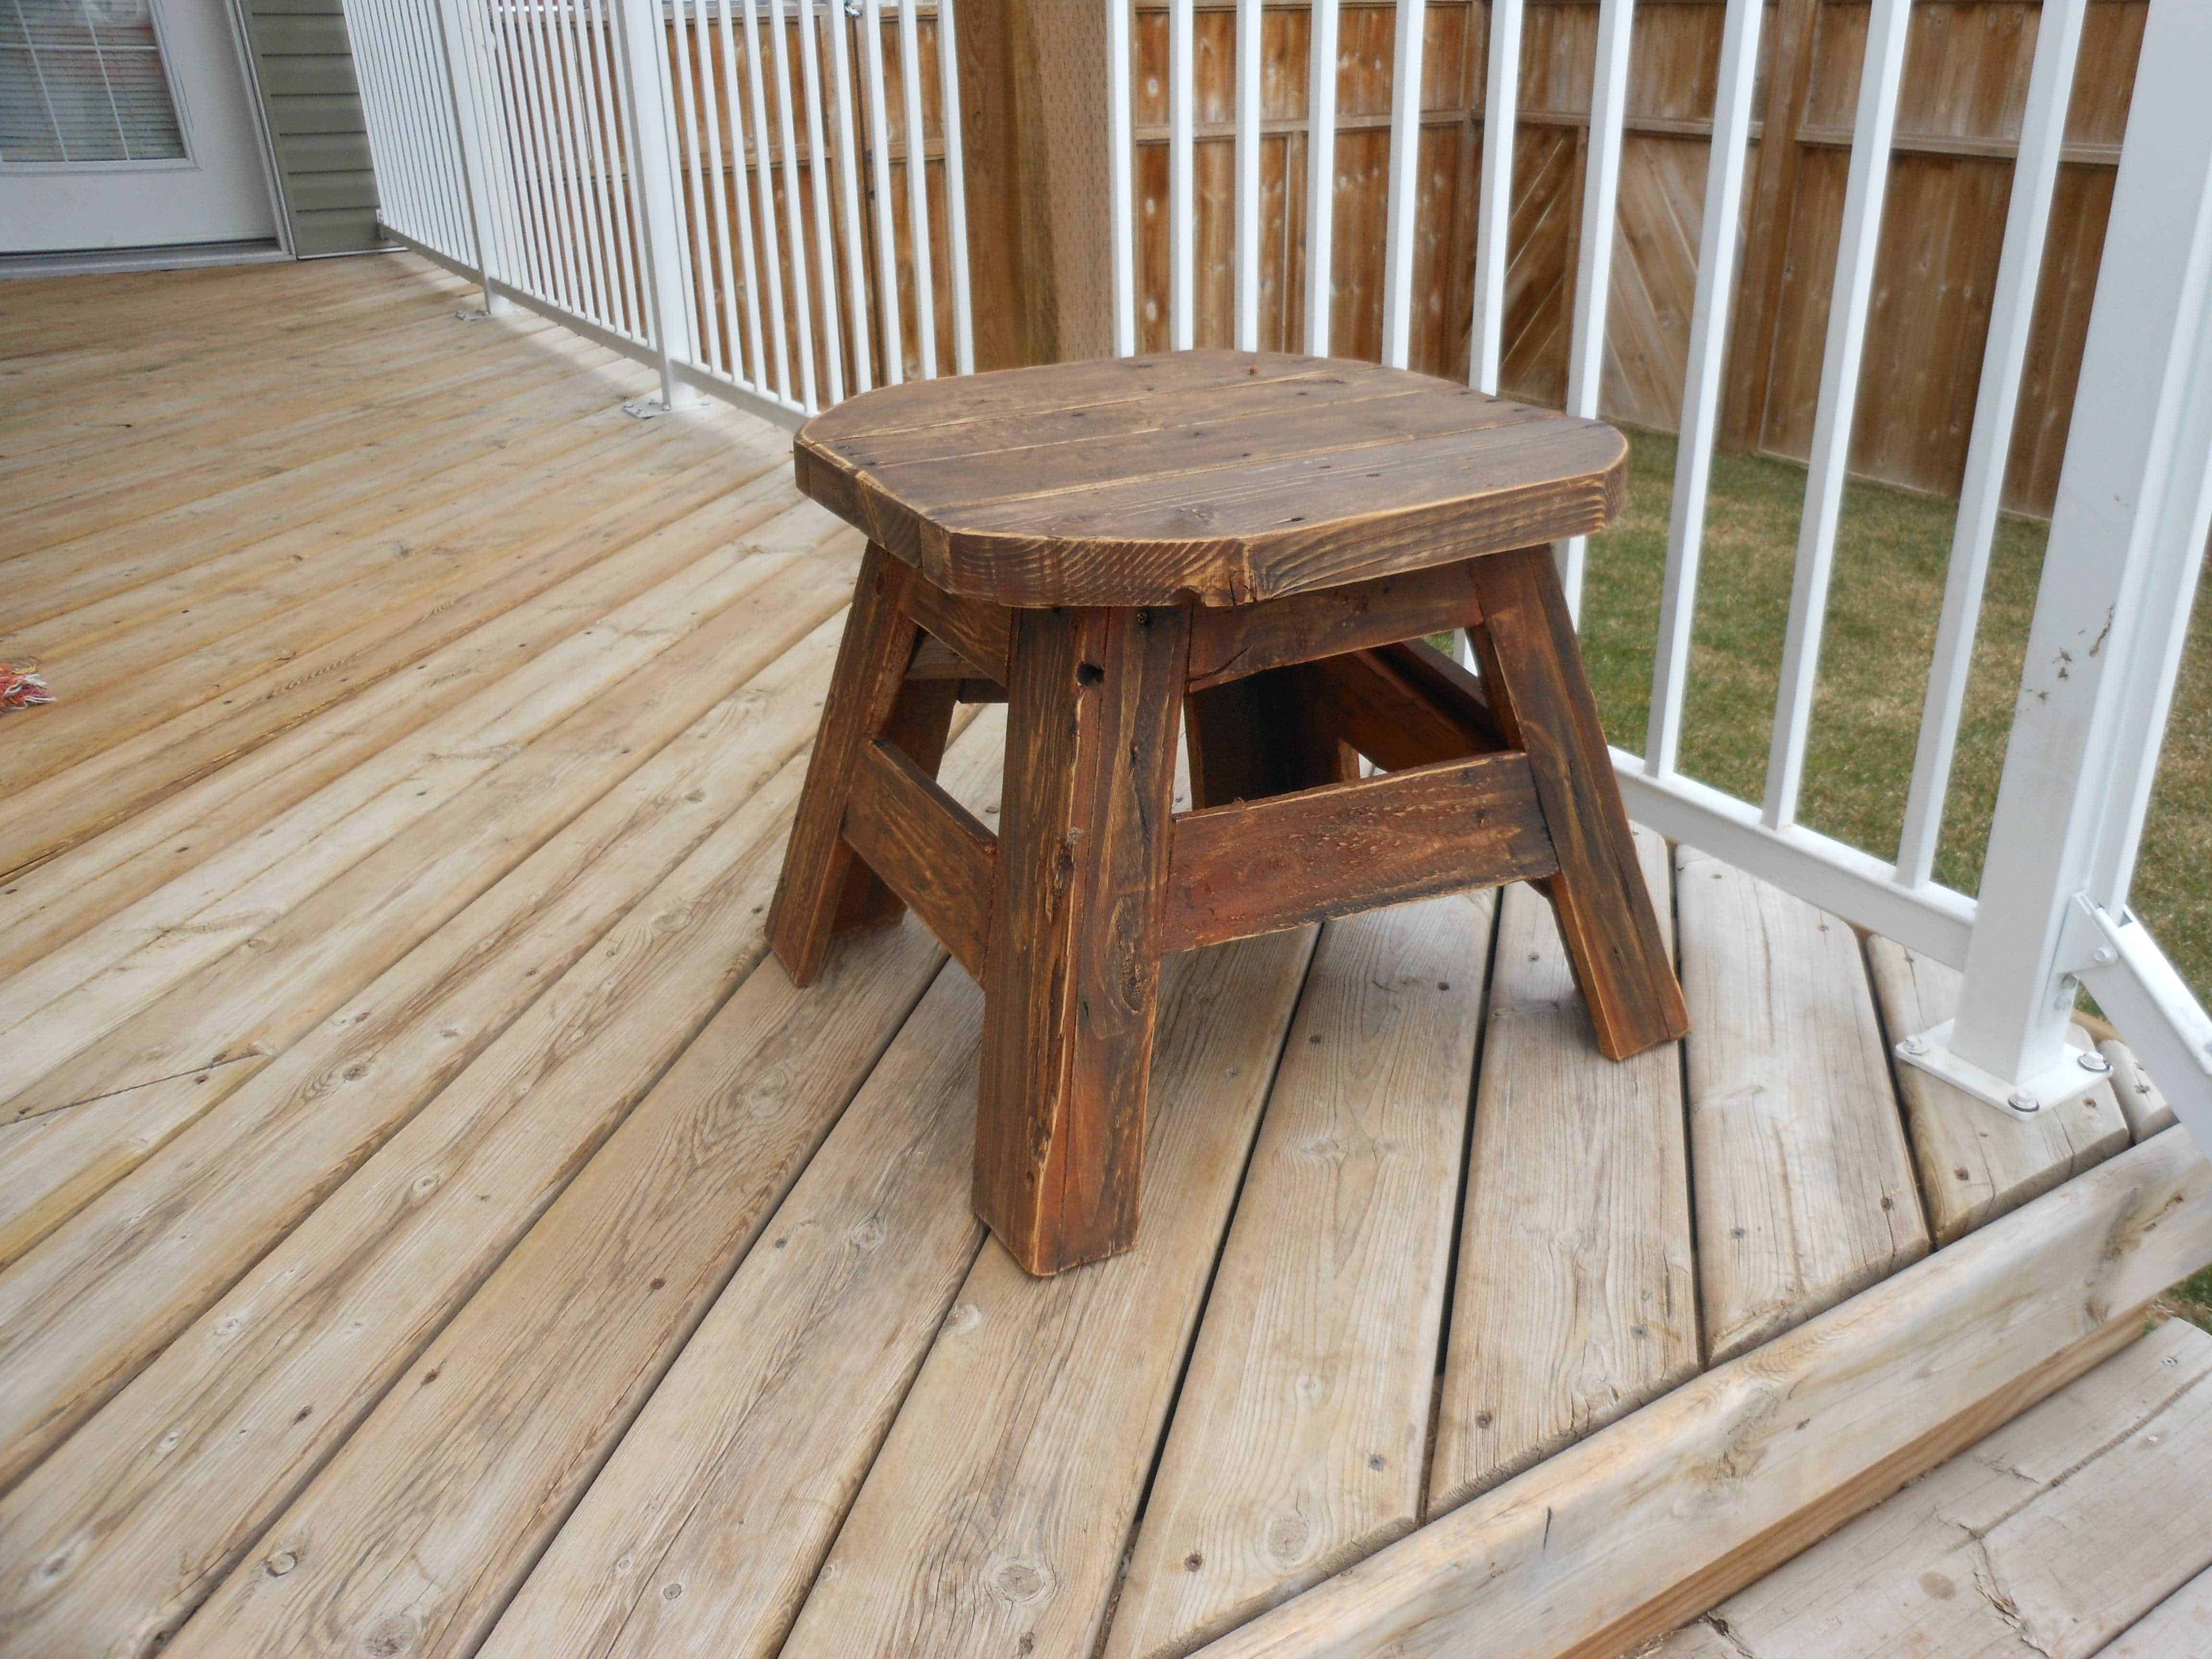 patio side table made from upcycled pallet wood u2022 pallet ideas u2022 pallets